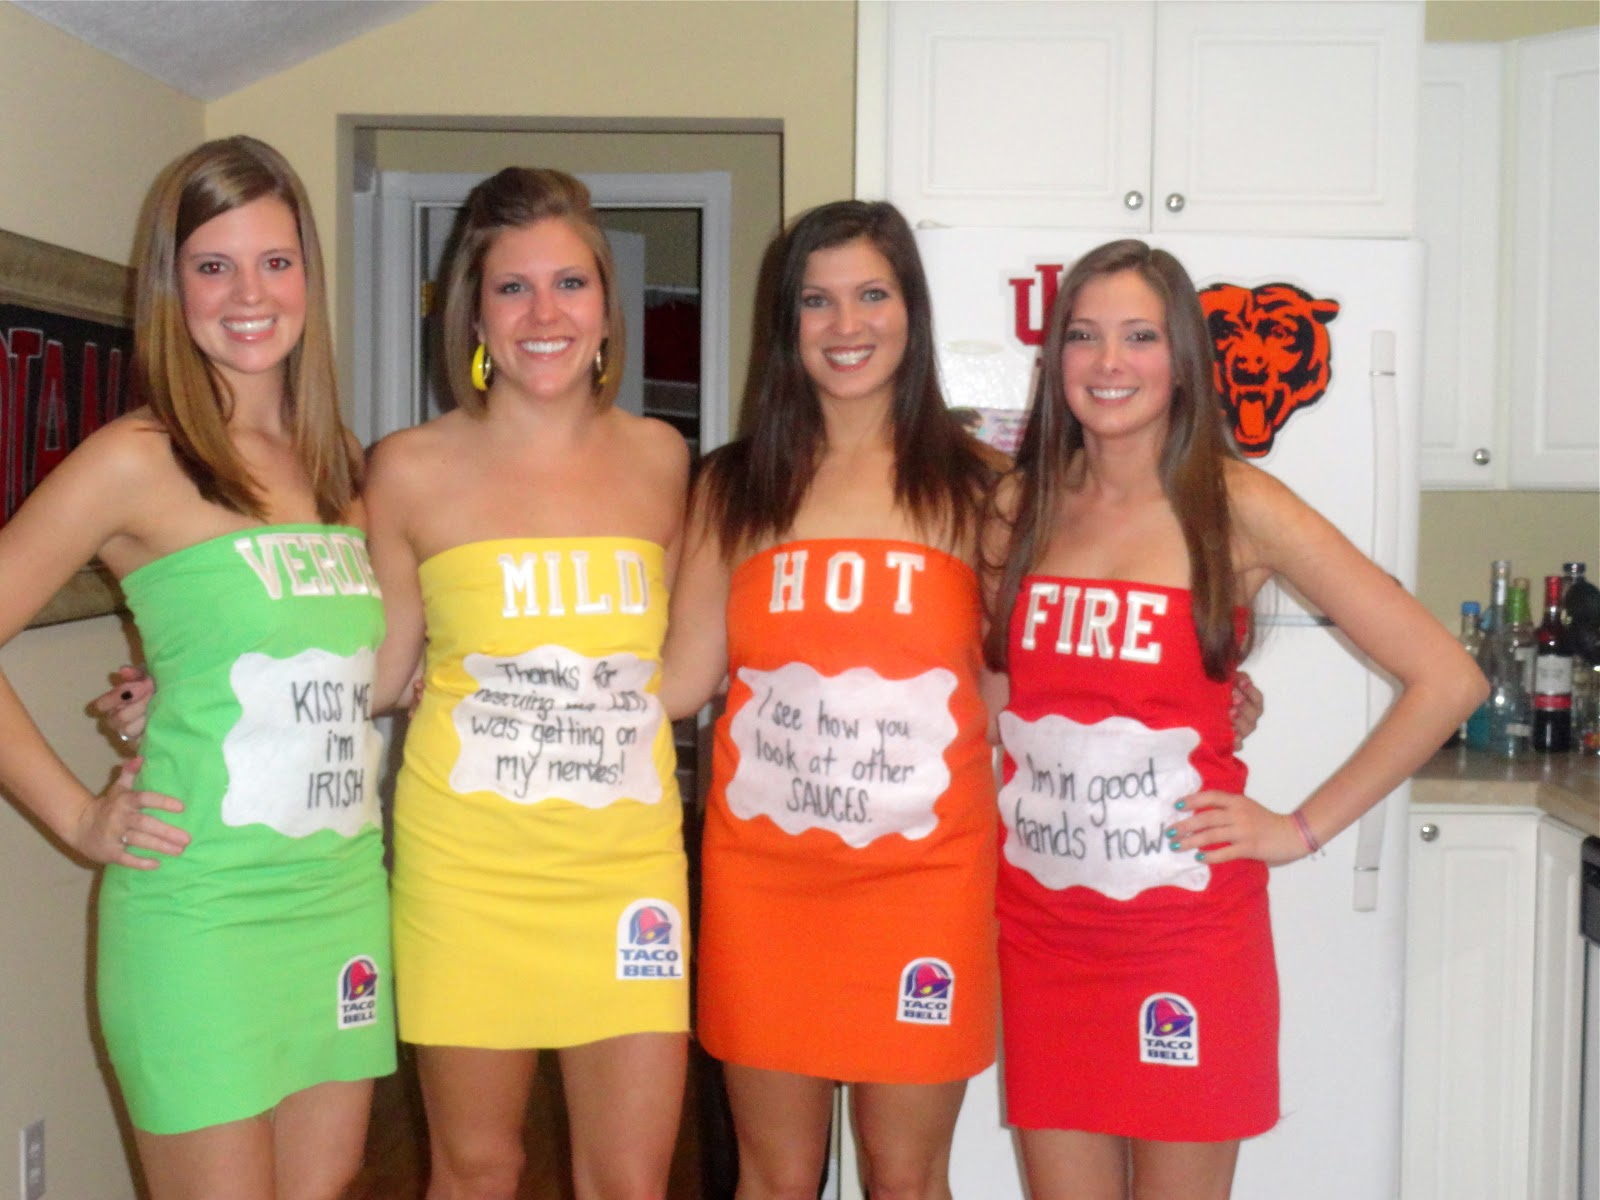 hot girls taco bell hot sauce halloween - Fire Girl Halloween Costume